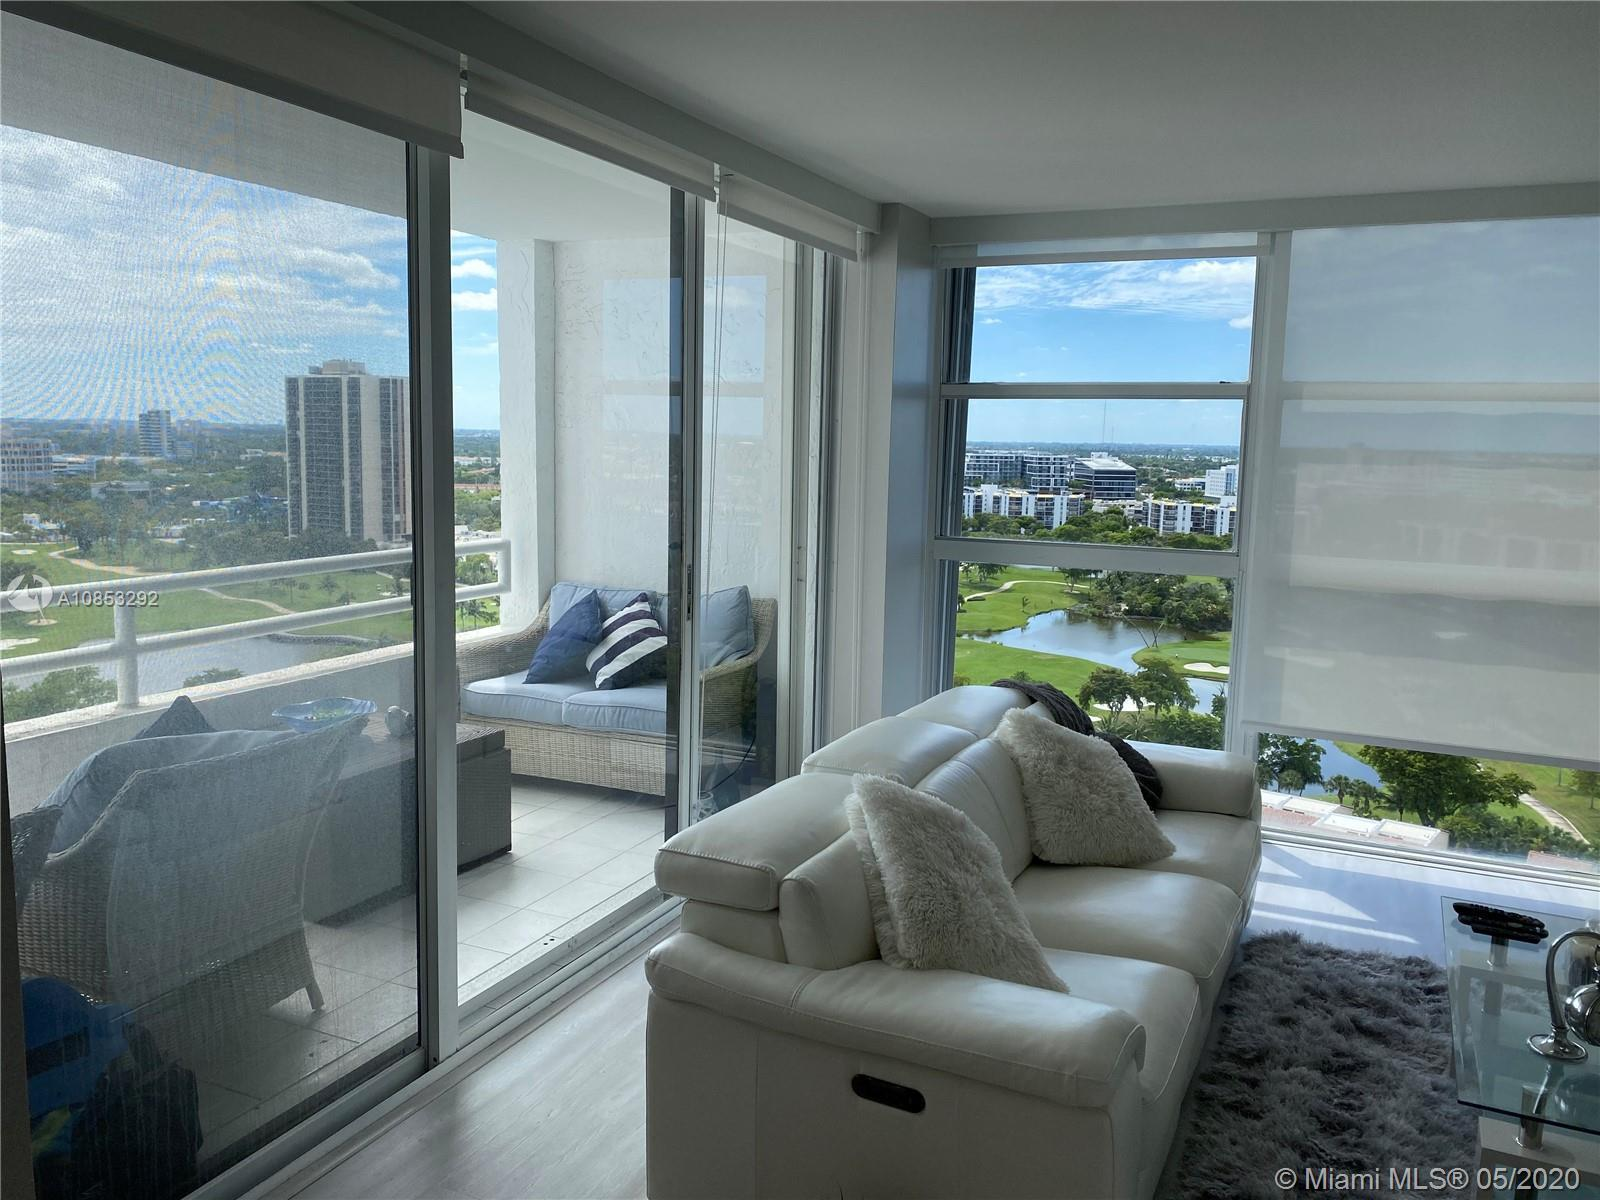 Luxury Fully Remodeled corner unit in the heart of Aventura Fl. Stunning Golf views from living room